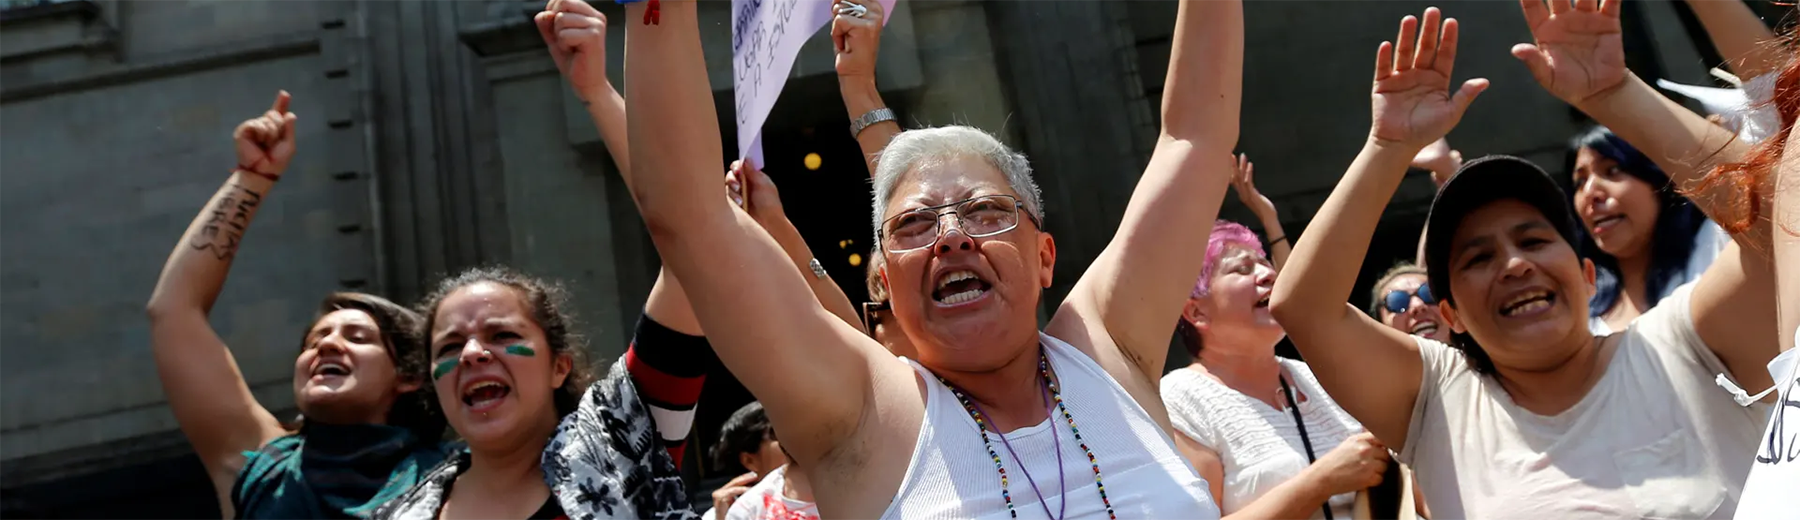 """Abortion rights activists protest in Mexico City, where abortion is decriminalised. However, abortion is illegal in much of the country."" (Photo: Henry Romero / Reuters/Reuters)"